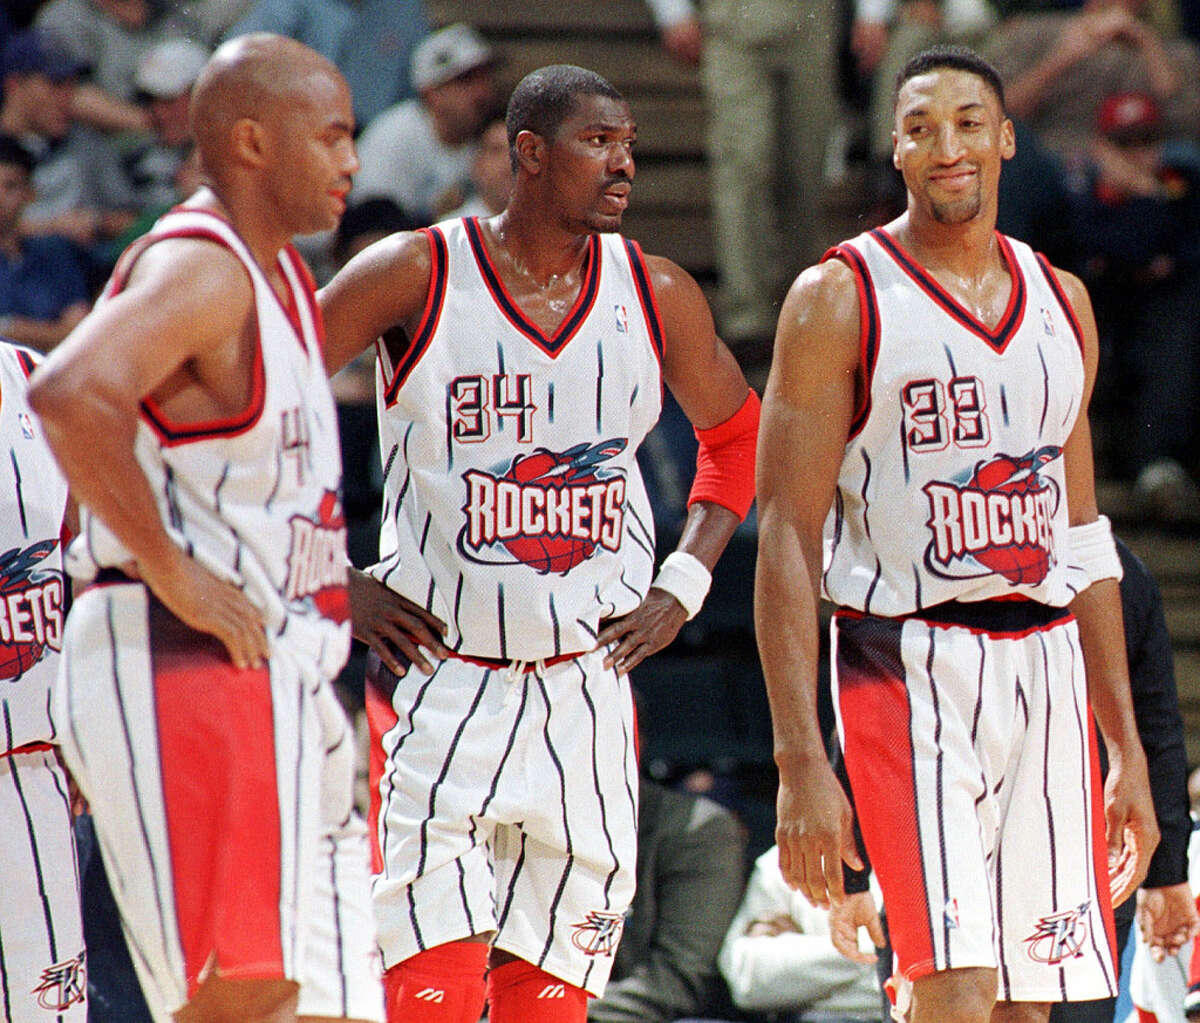 No. 16 seed: Rockets pajamas (1995-2003) After winning two championships in their familiar red, white and yellow uniforms, the Rockets switched to these controversial jerseys with a cartoon rocket and pinstripes. It wasn't a hit with fans, as there was something undignified about the great Hakeem Olajuwon wearing these cartoonish togs.